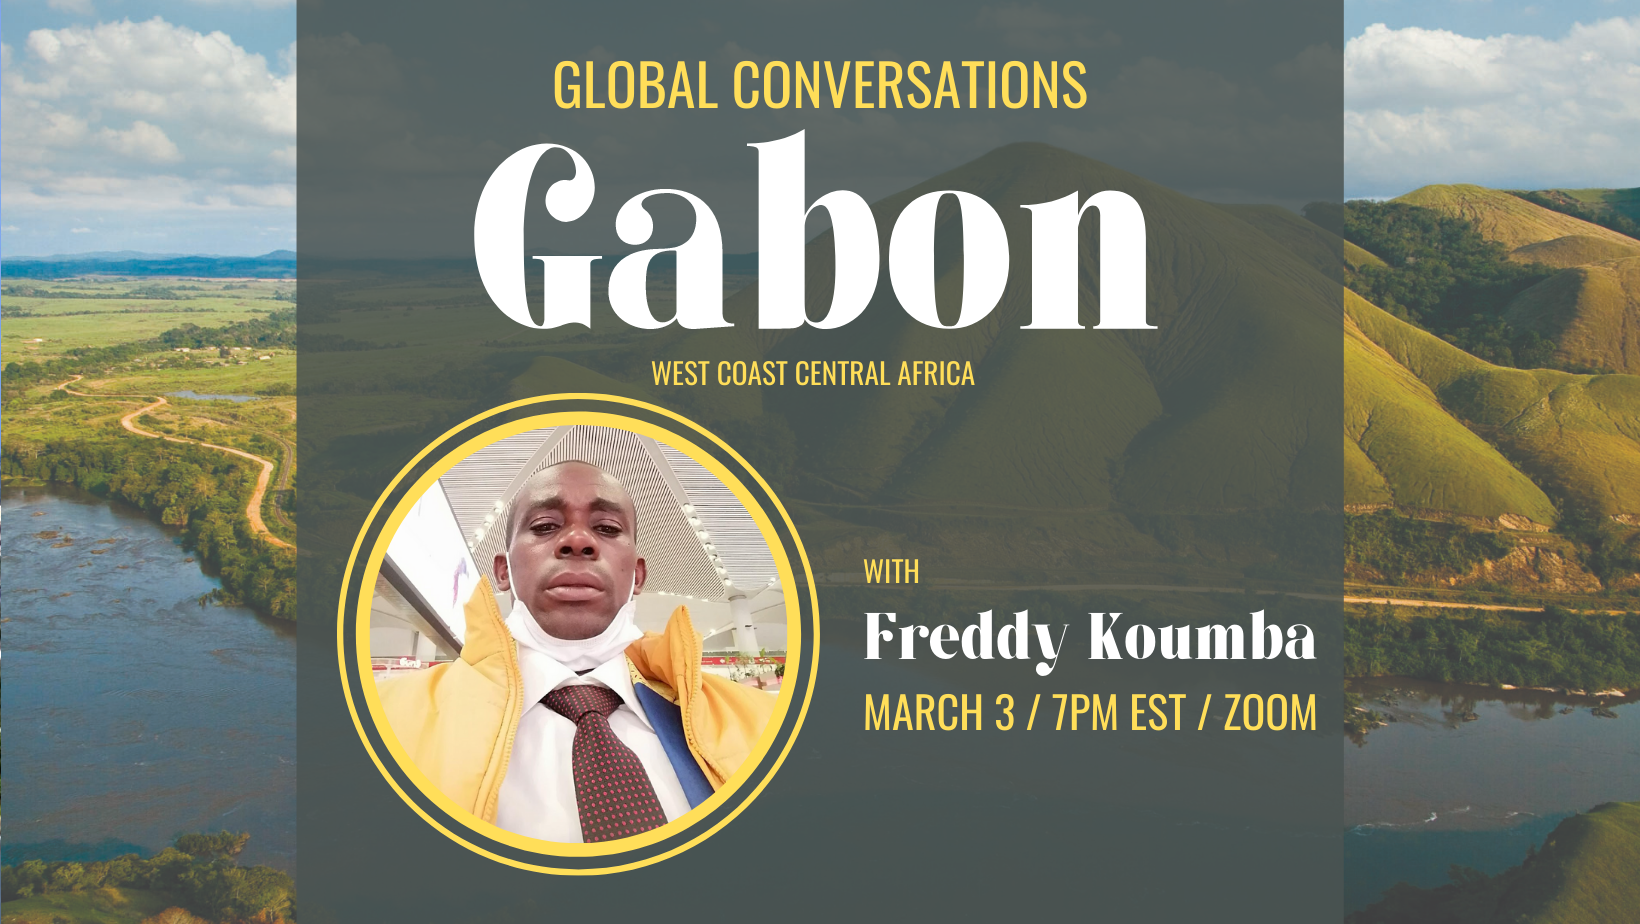 Global Conversations: Gabon